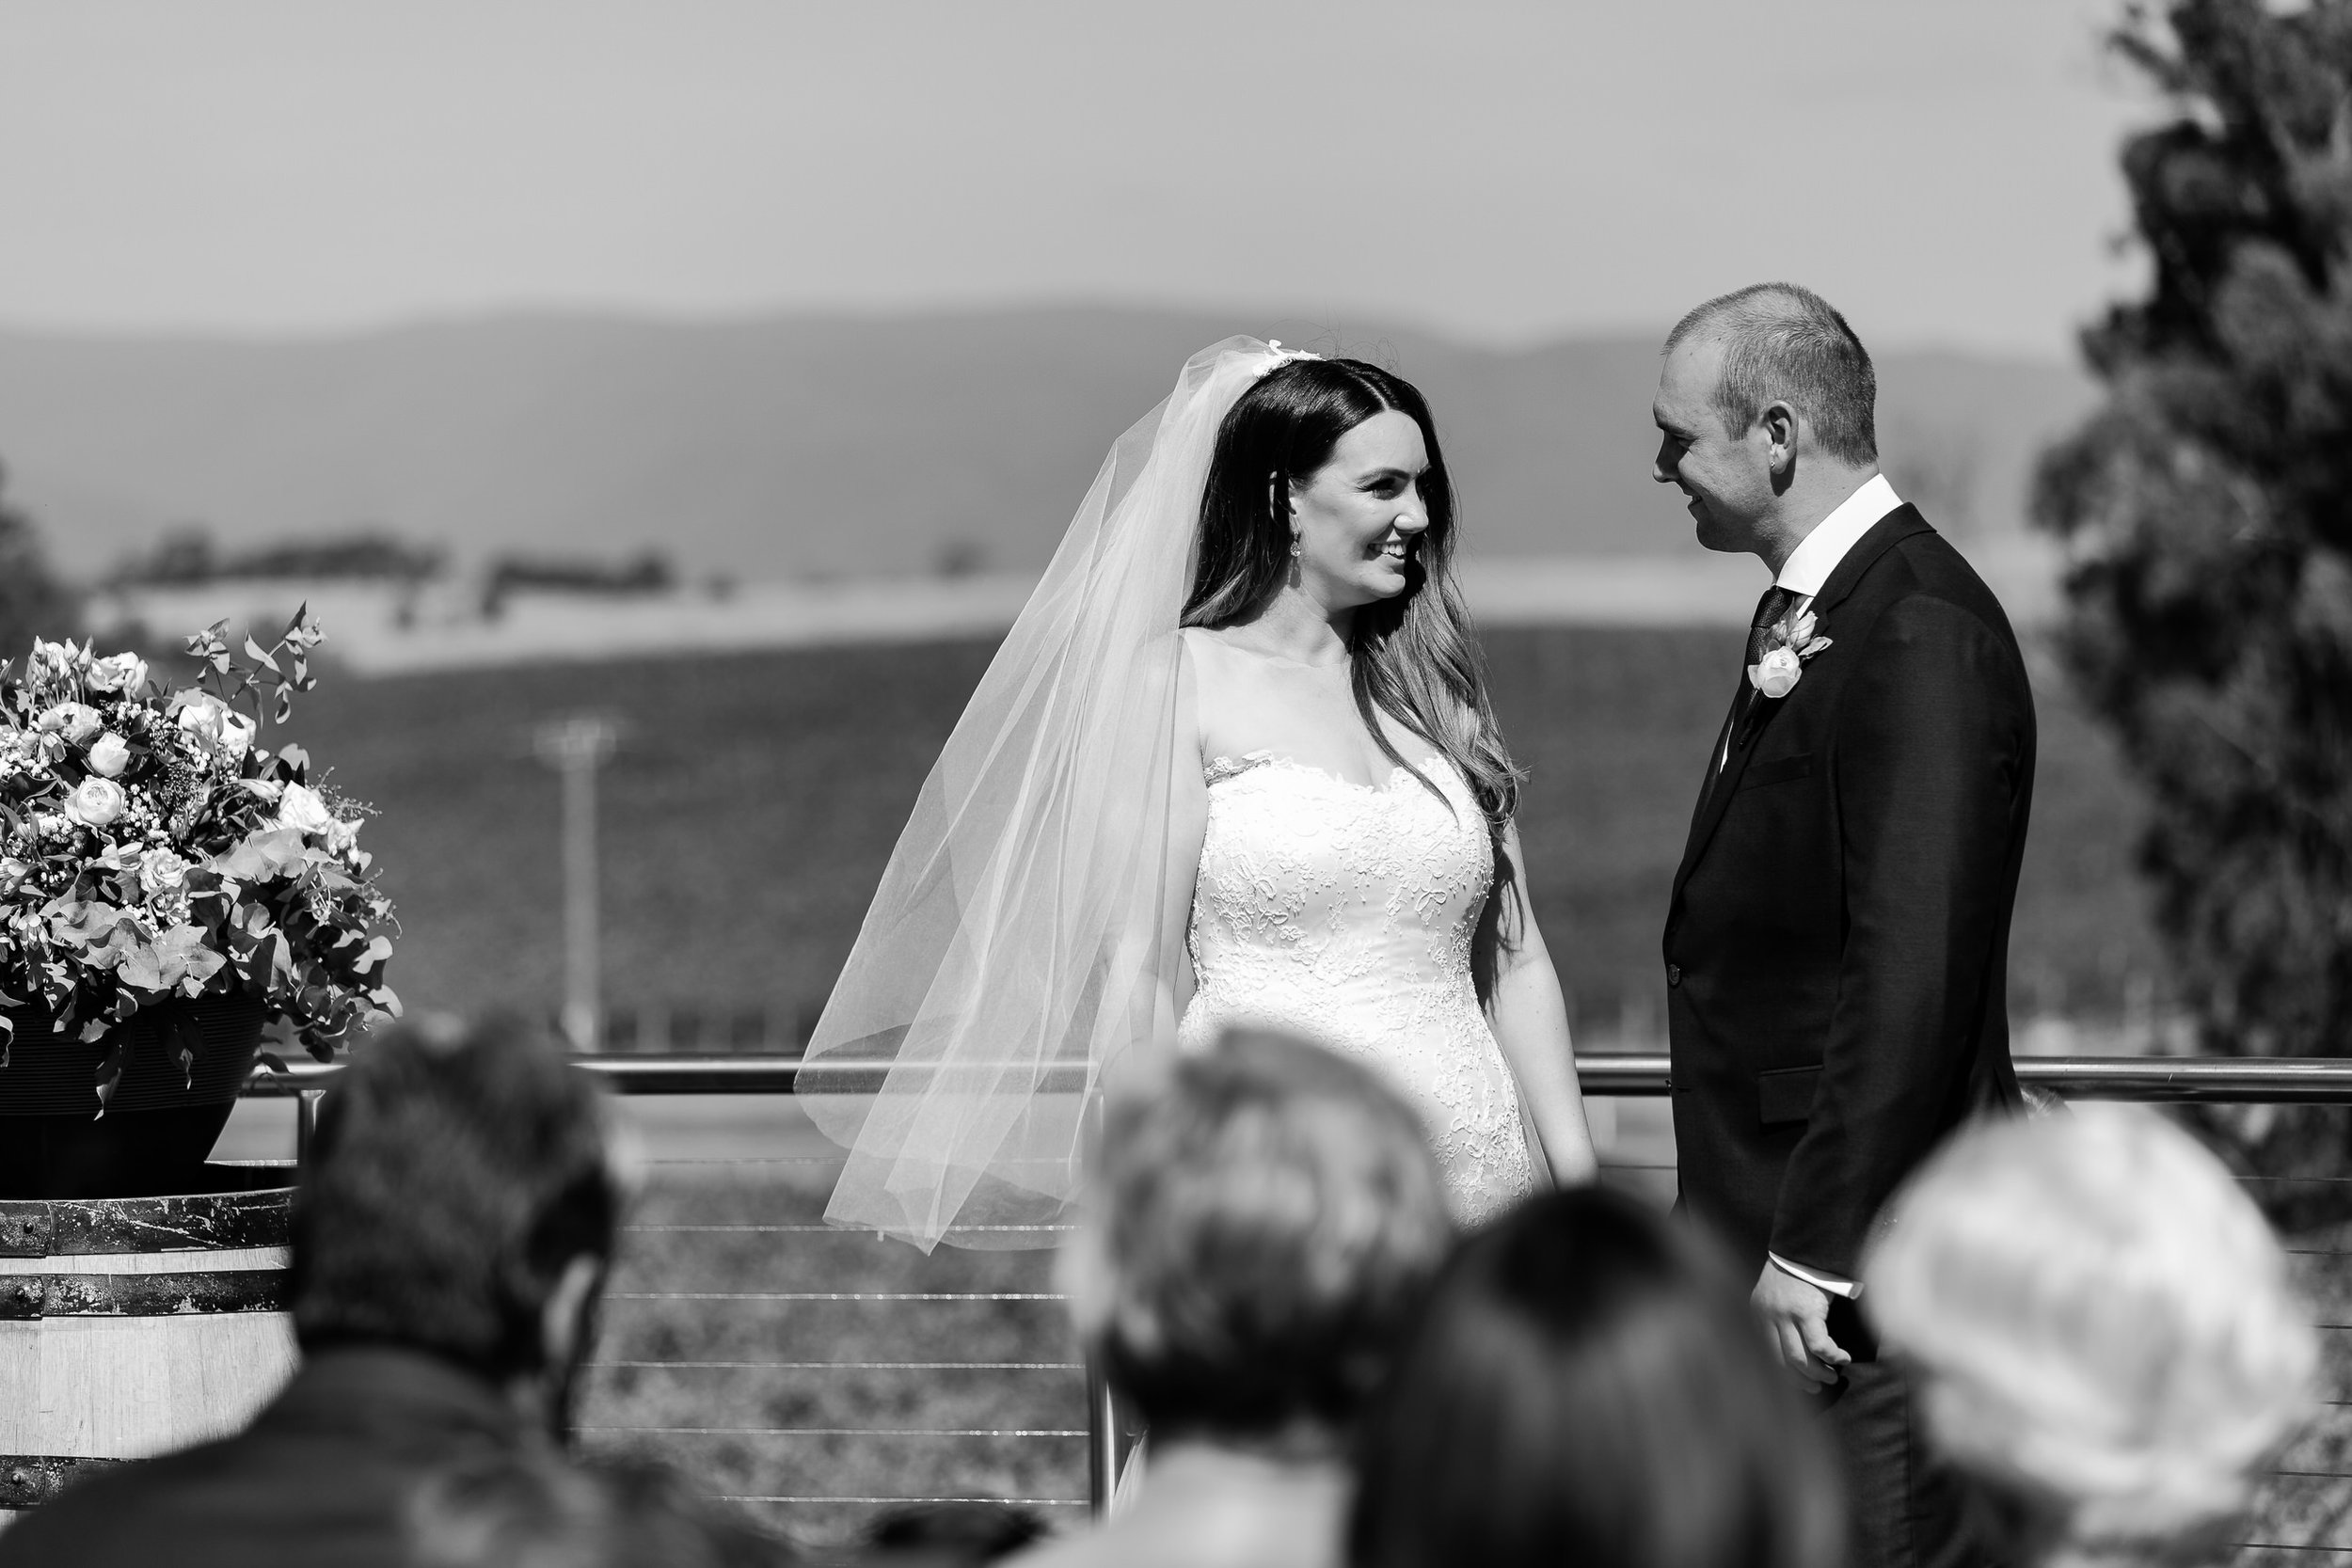 Justin_And_Jim_Photography_Balgownie_Winery_Wedding27.JPG